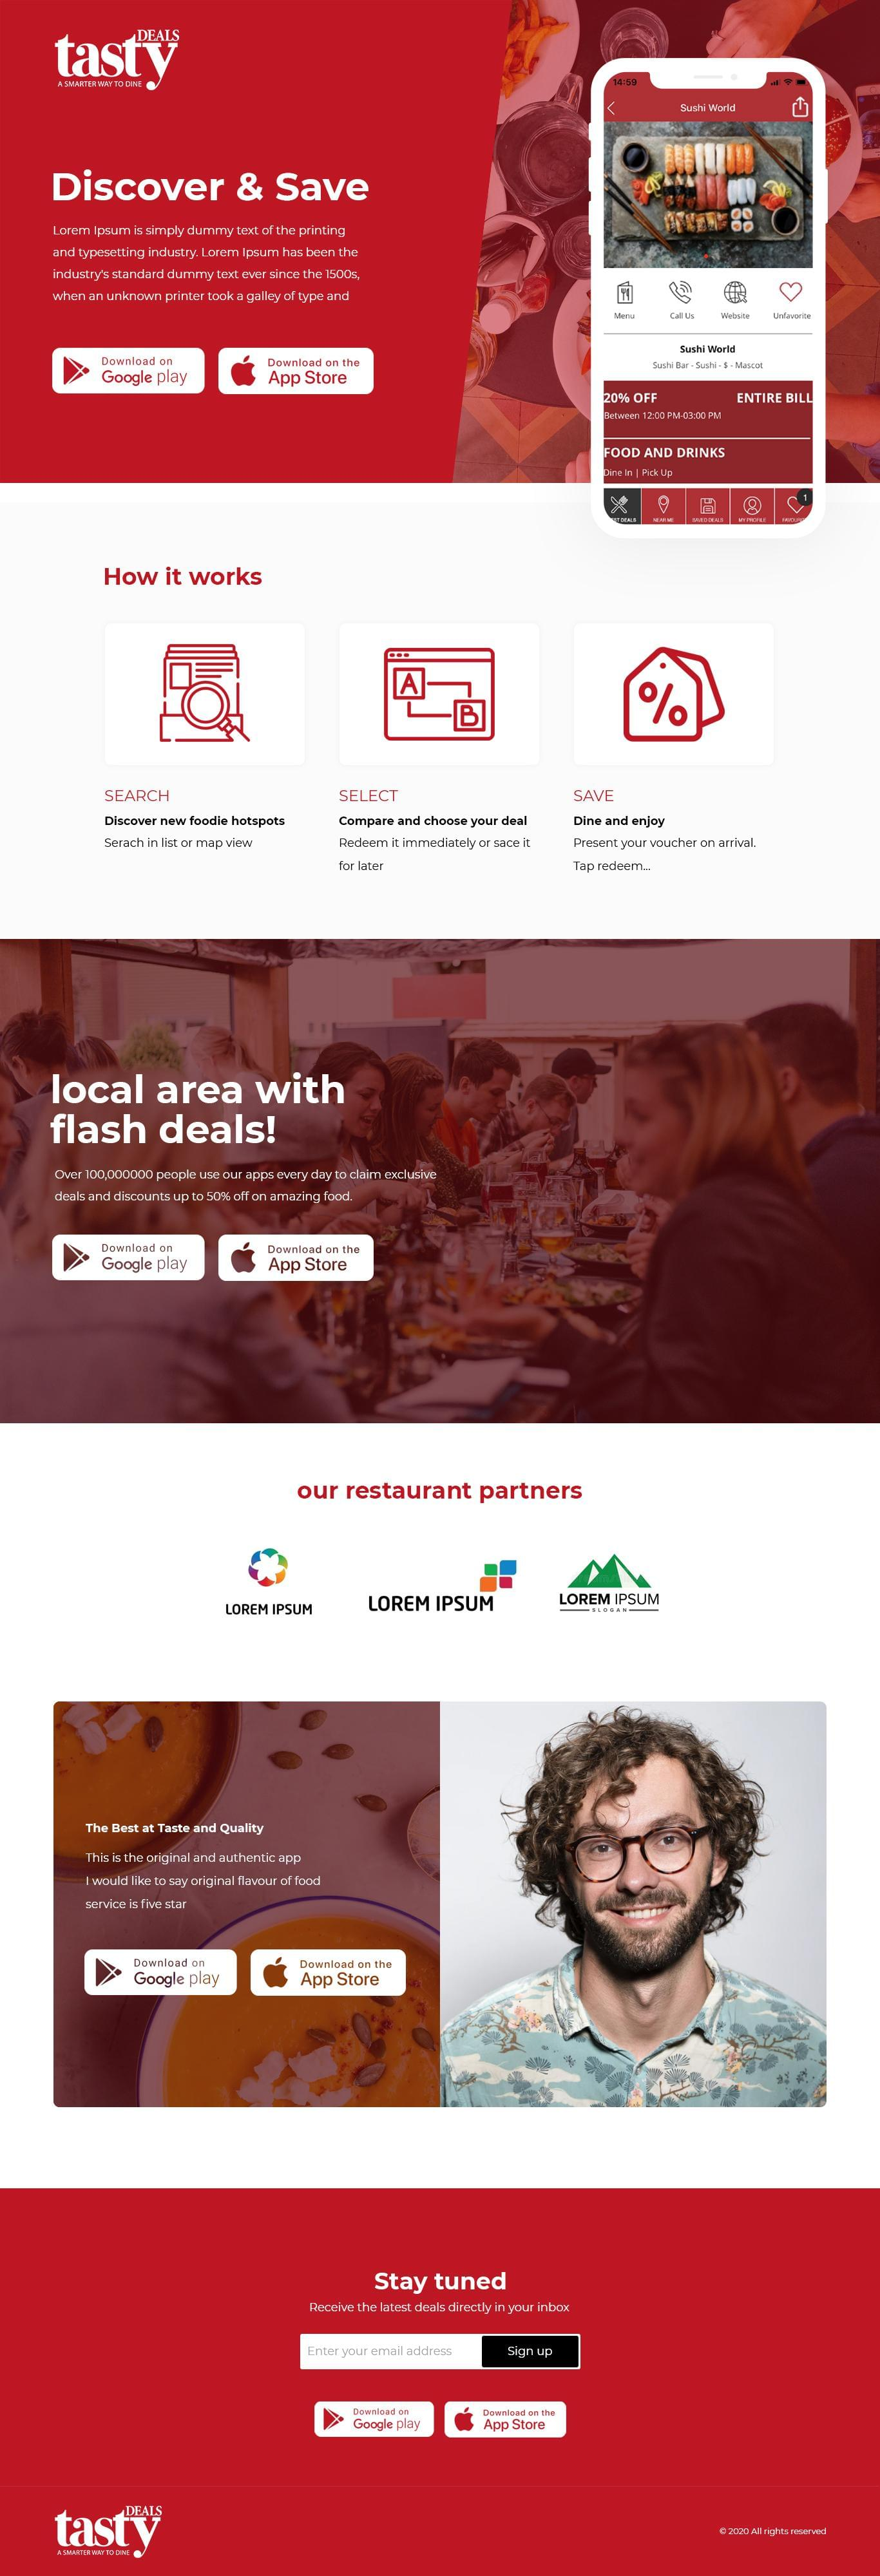 Professional Homepage Design by BarwalDesigns - 119247